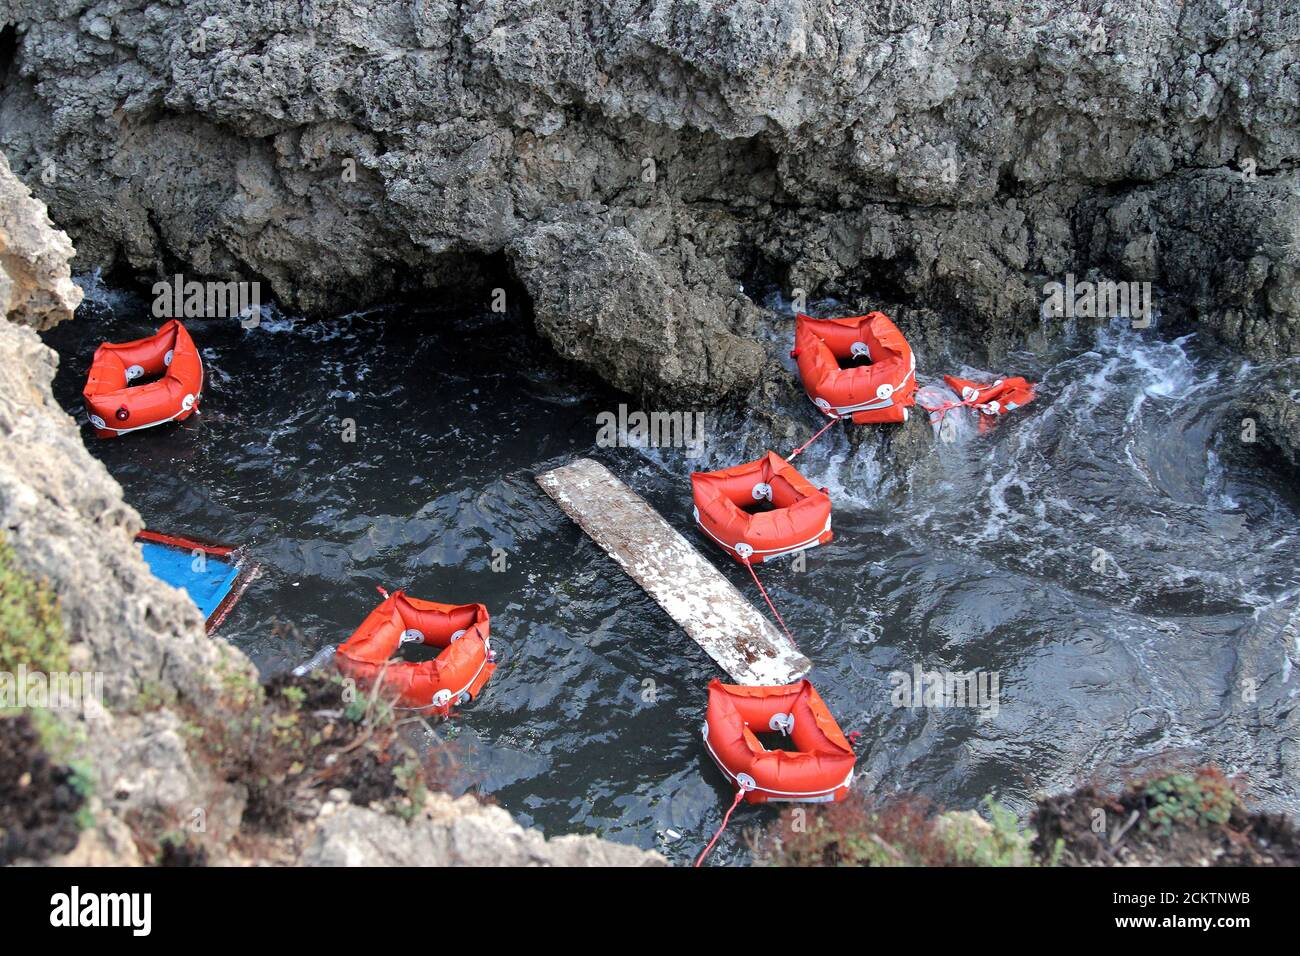 Flotation devices are seen in the area where a migrant boat capsized off the Italian coast, on the island of Lampedusa, Italy, November 24, 2019. REUTERS/Mauro Buccarello Stock Photo